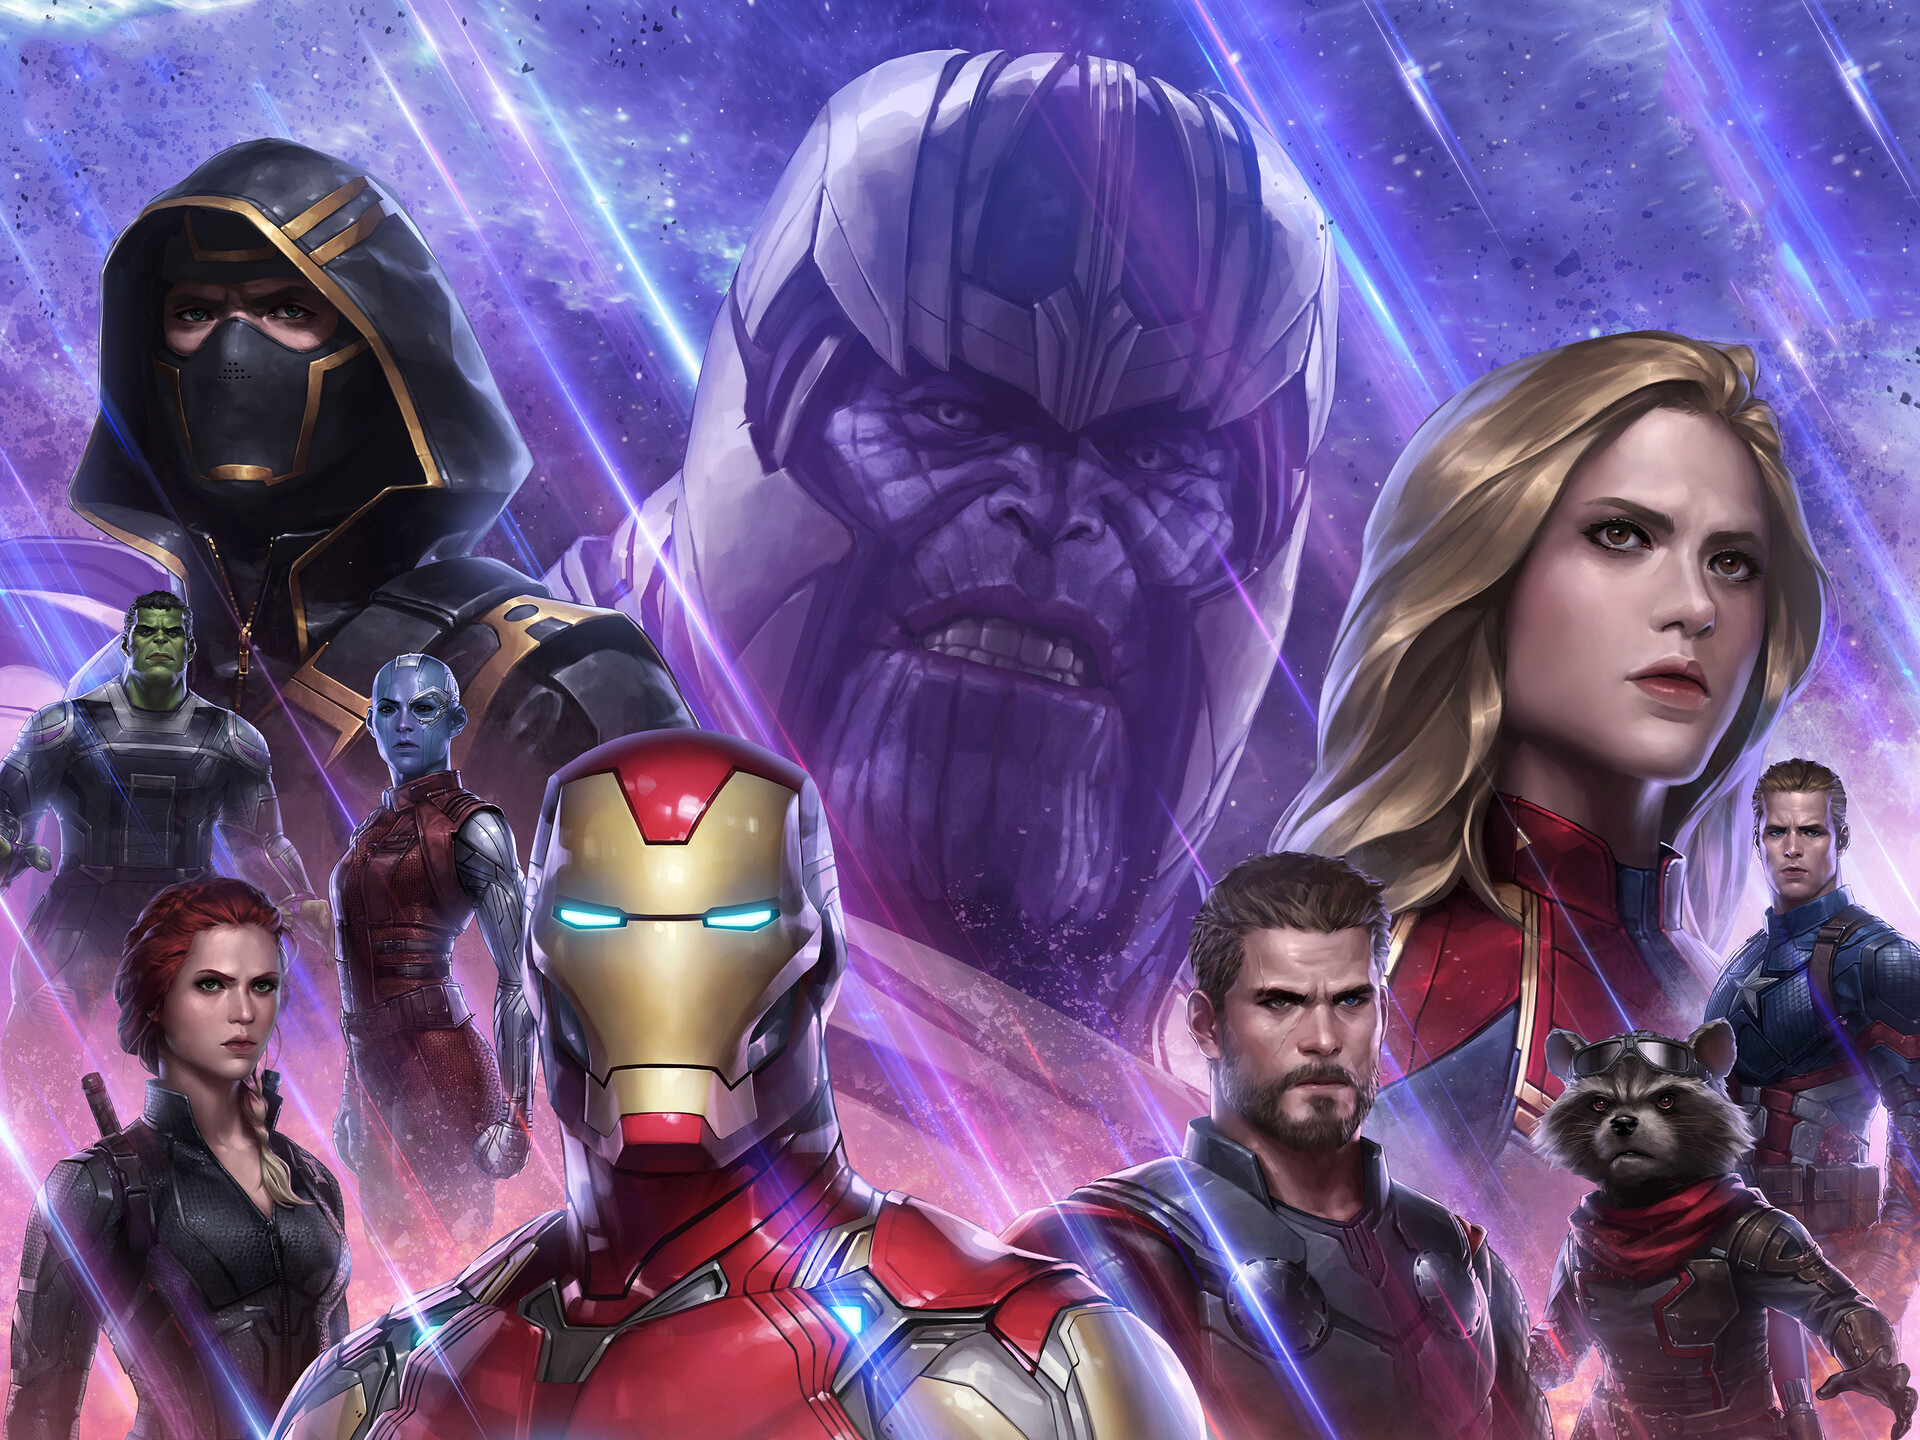 Marvel Future Fight Avengers Hd Games 4k Wallpapers Images